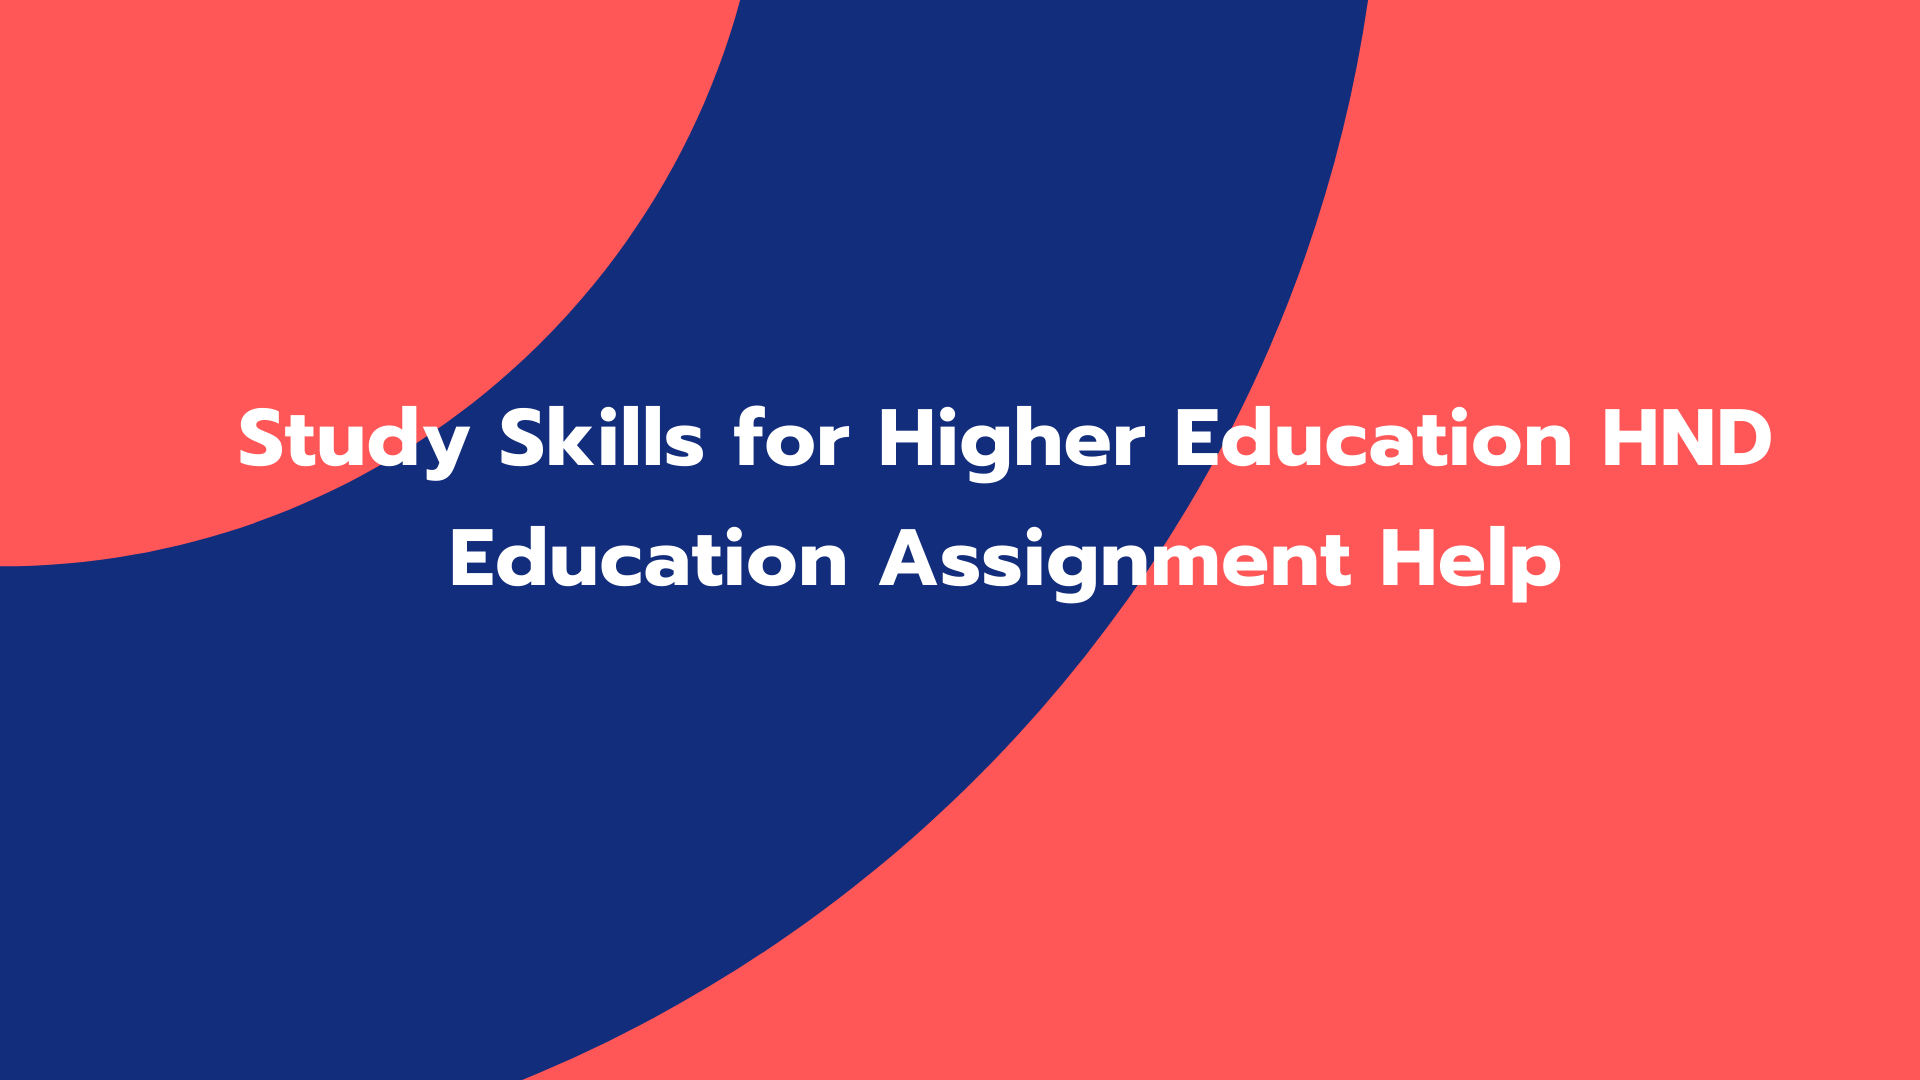 Study Skills for Higher Education HND Education Assignment Help